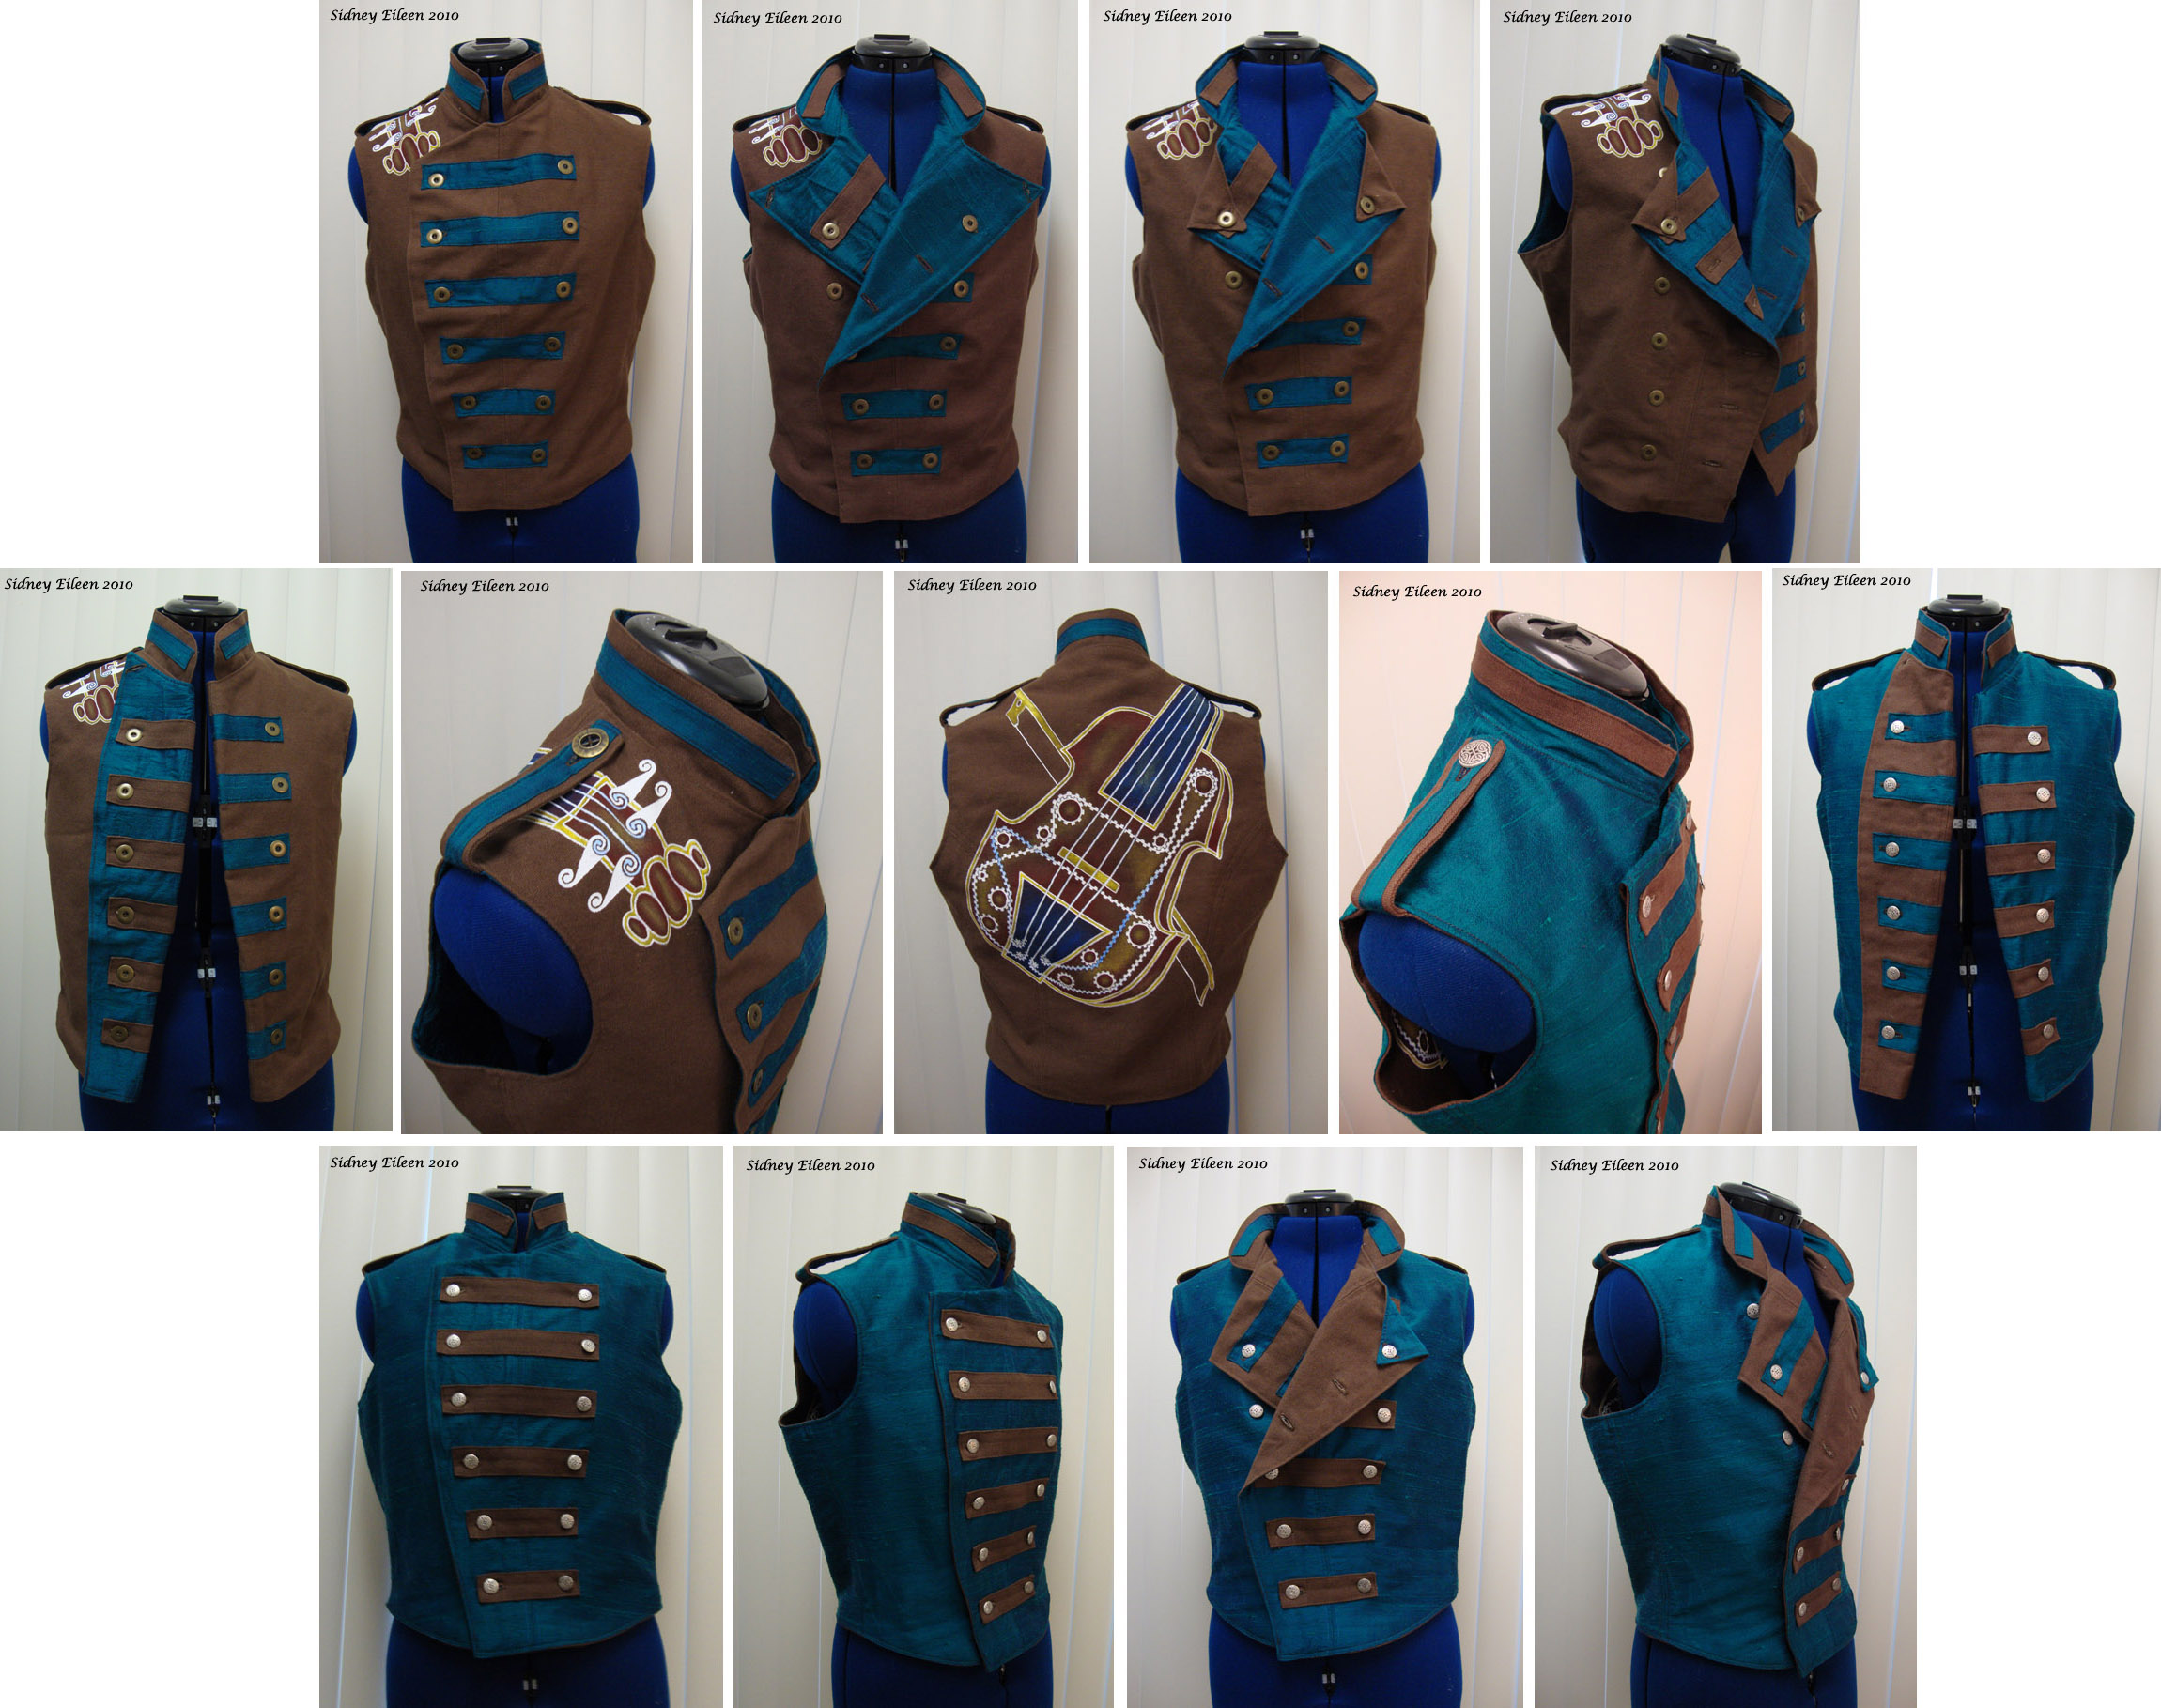 Violin vest prototype by sidneyeileen on deviantart for How to make a prototype shirt